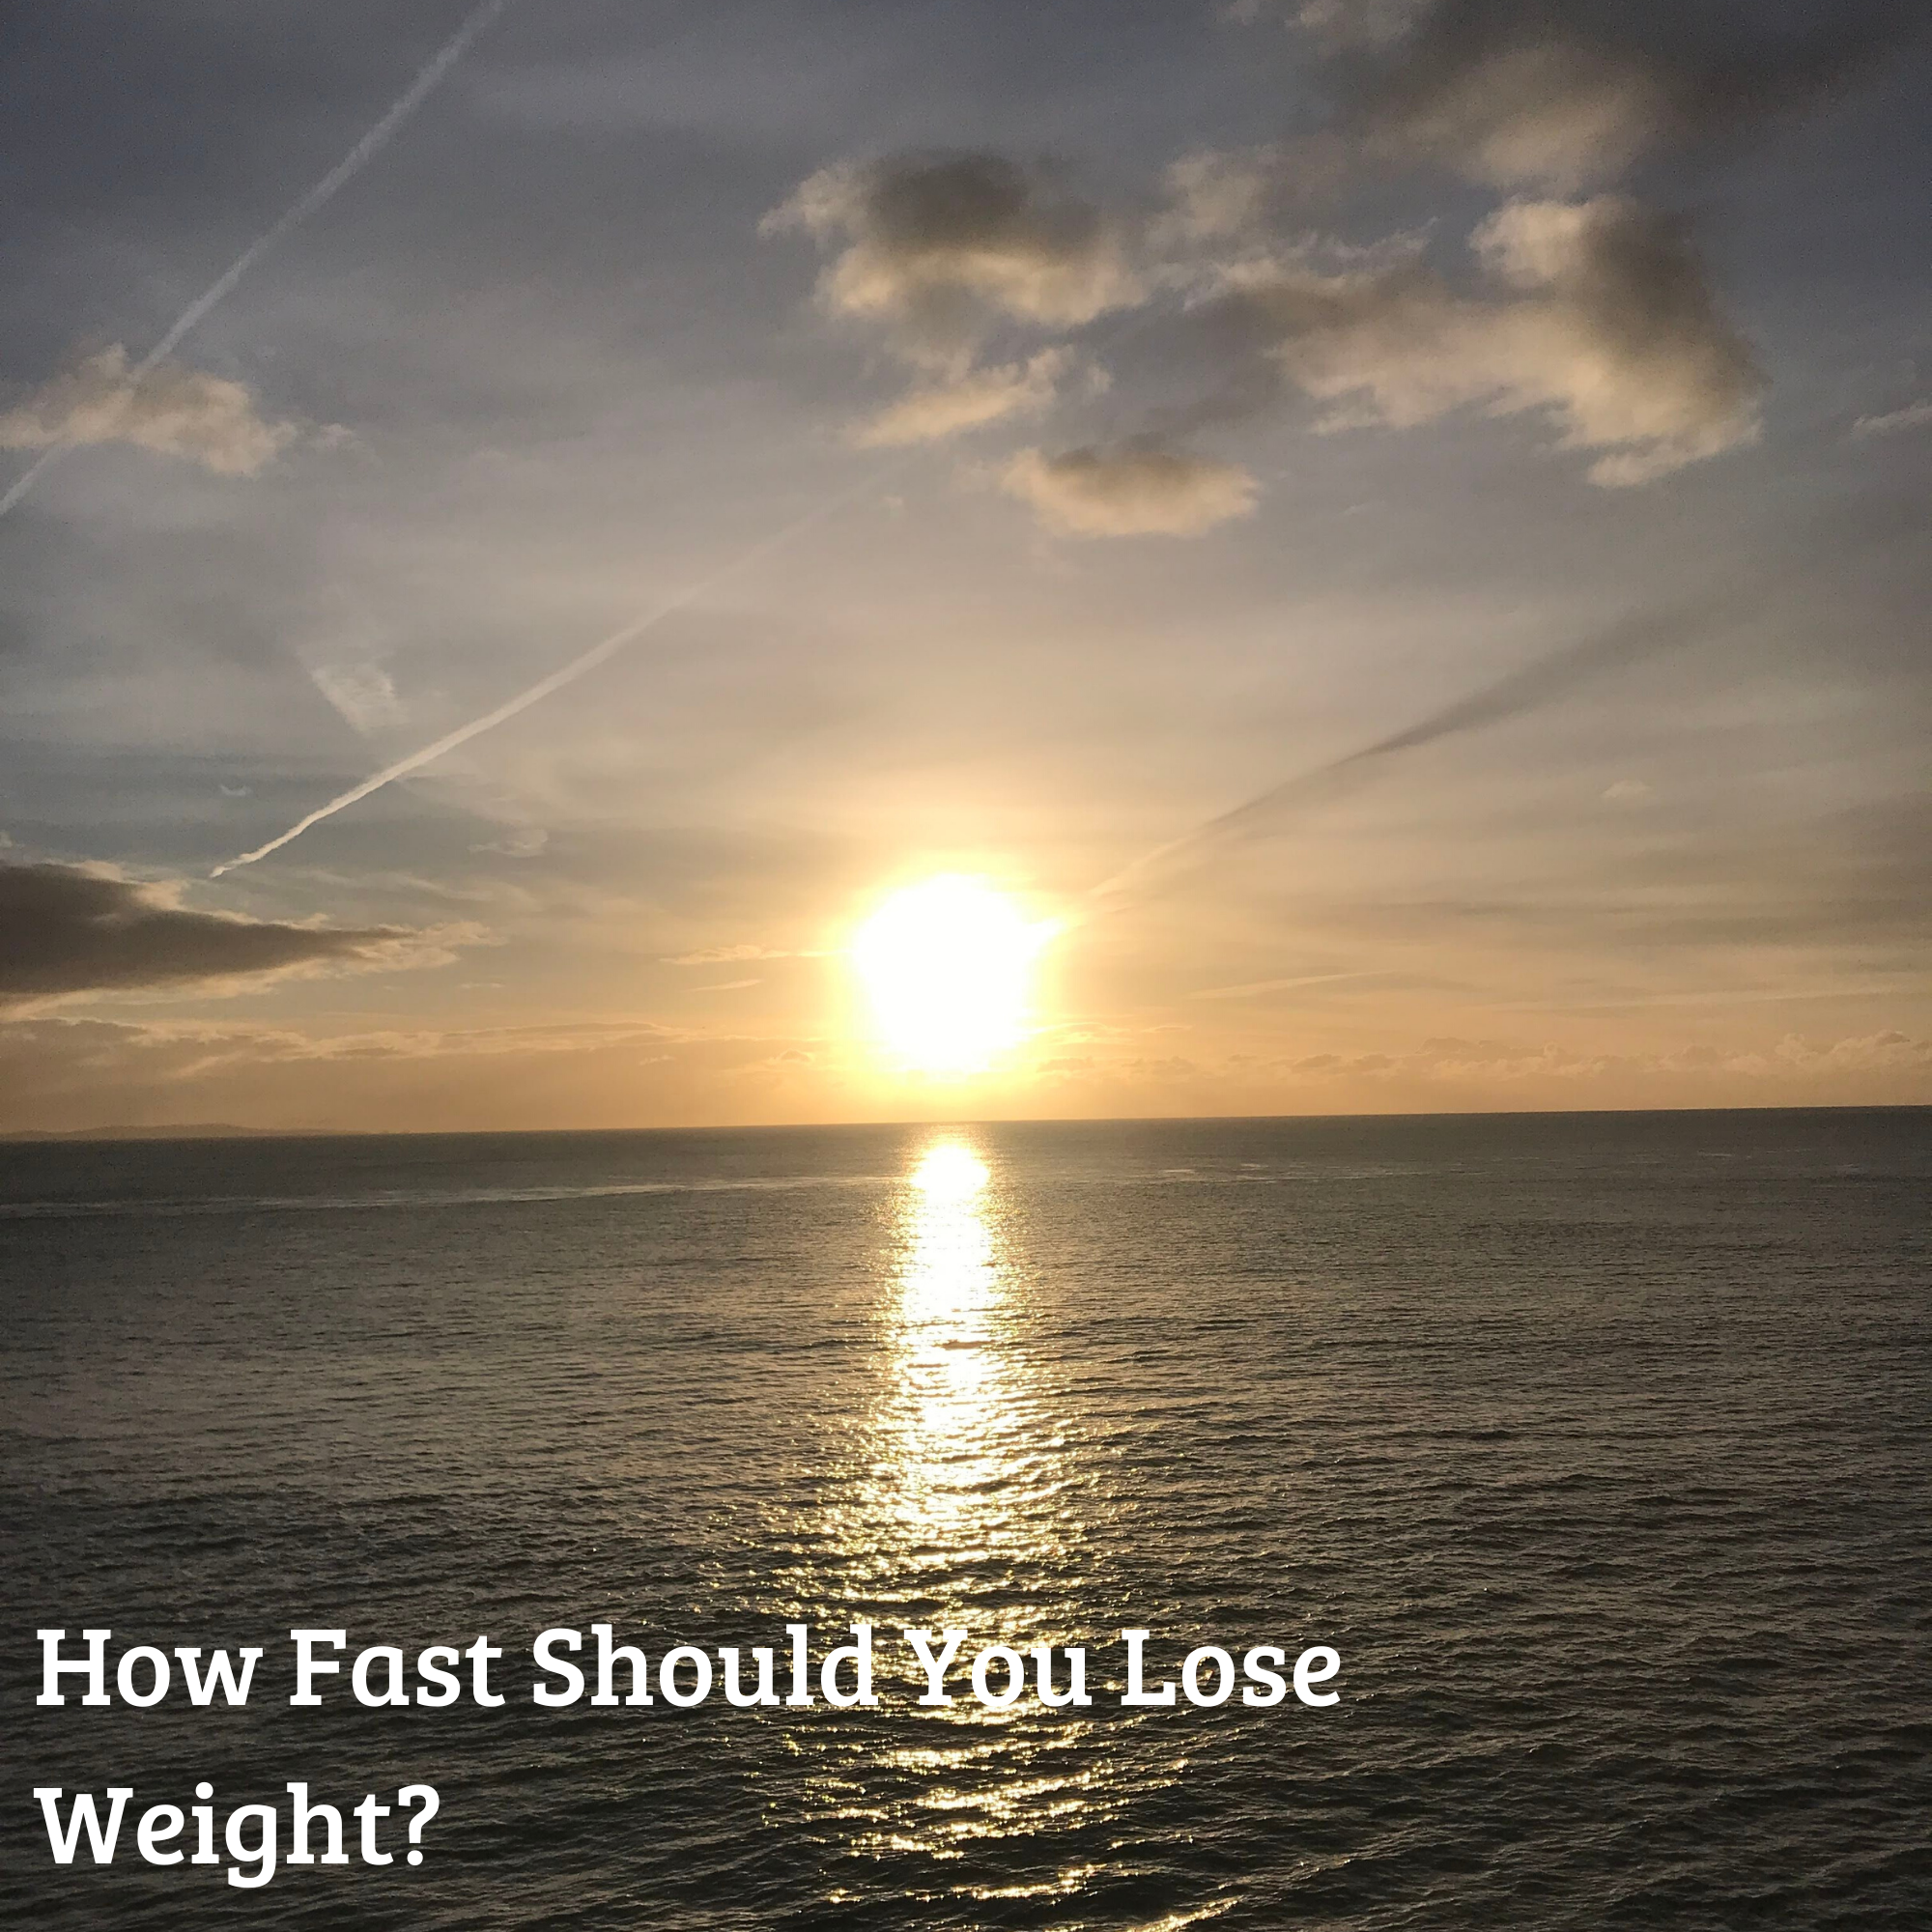 How Fast Should You Lose Weight?